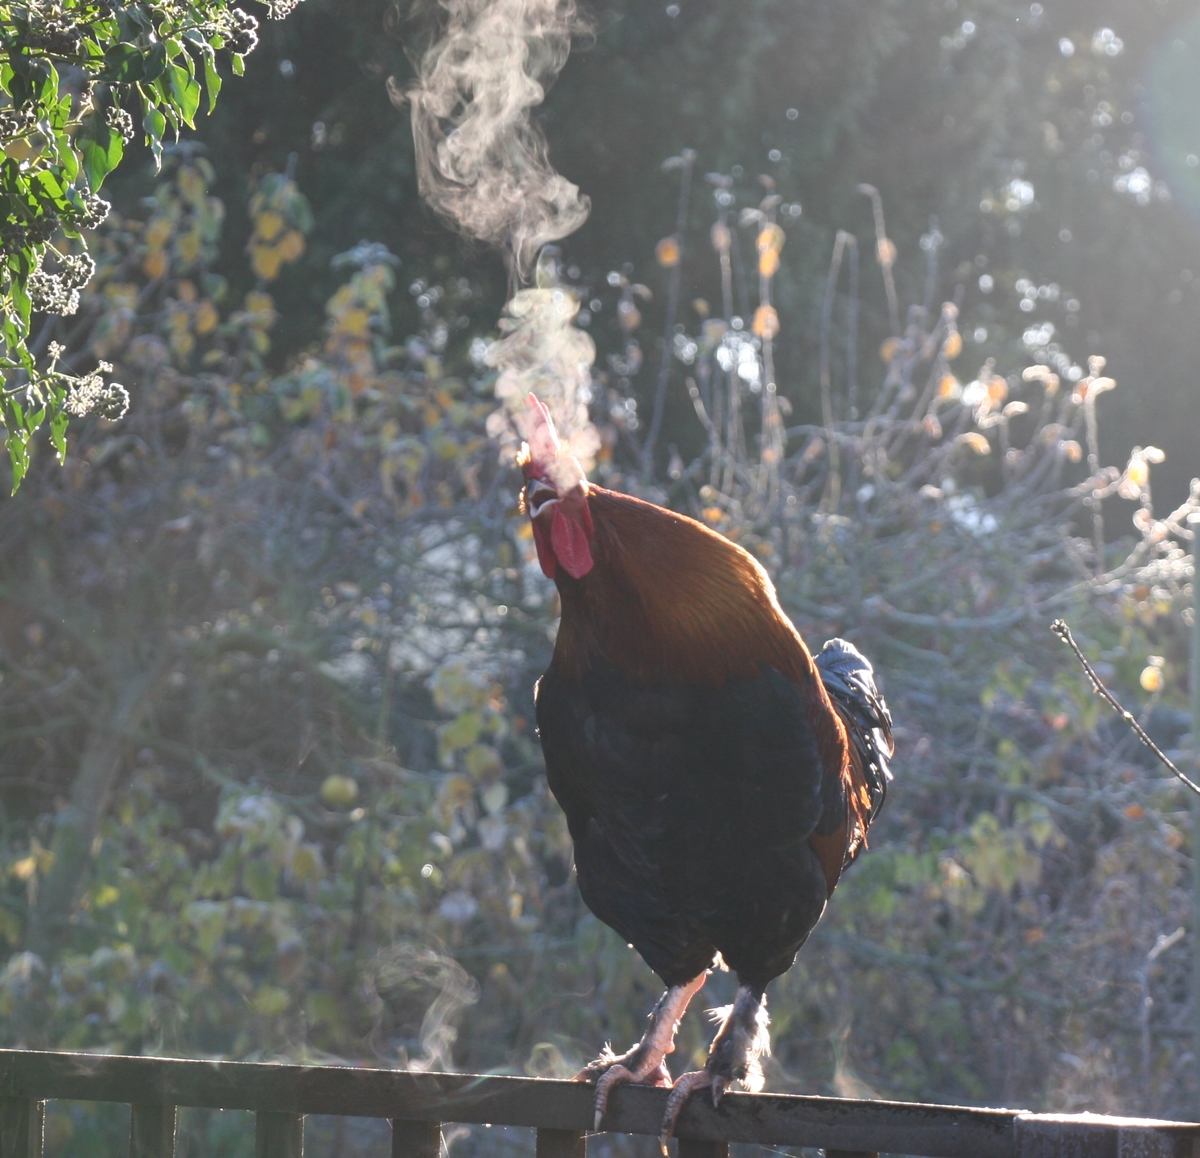 cockerel-smoking-1200